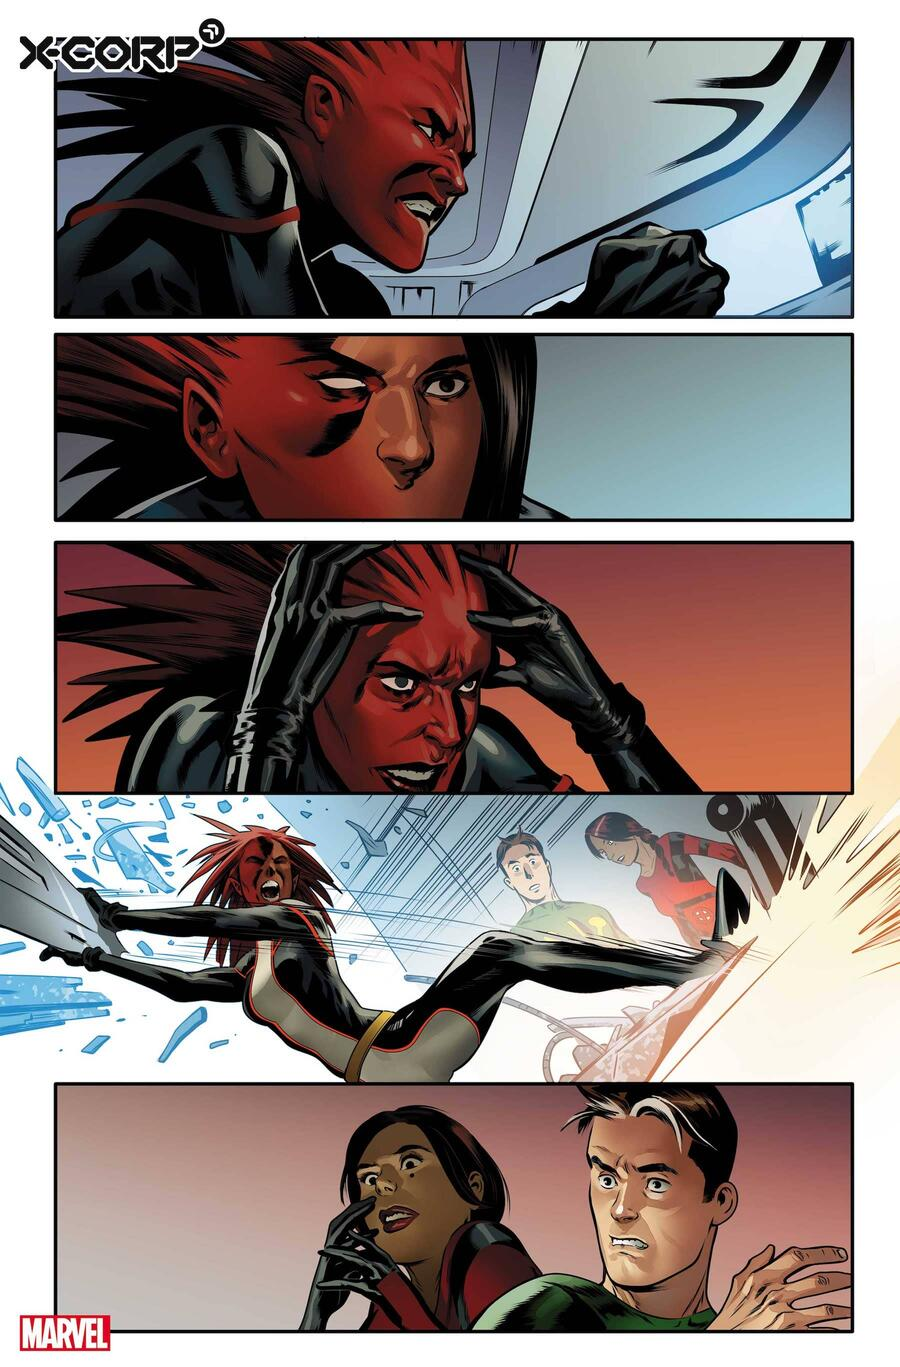 X-CORP #1 art by Alberto Foche with colors by Sunny Gho